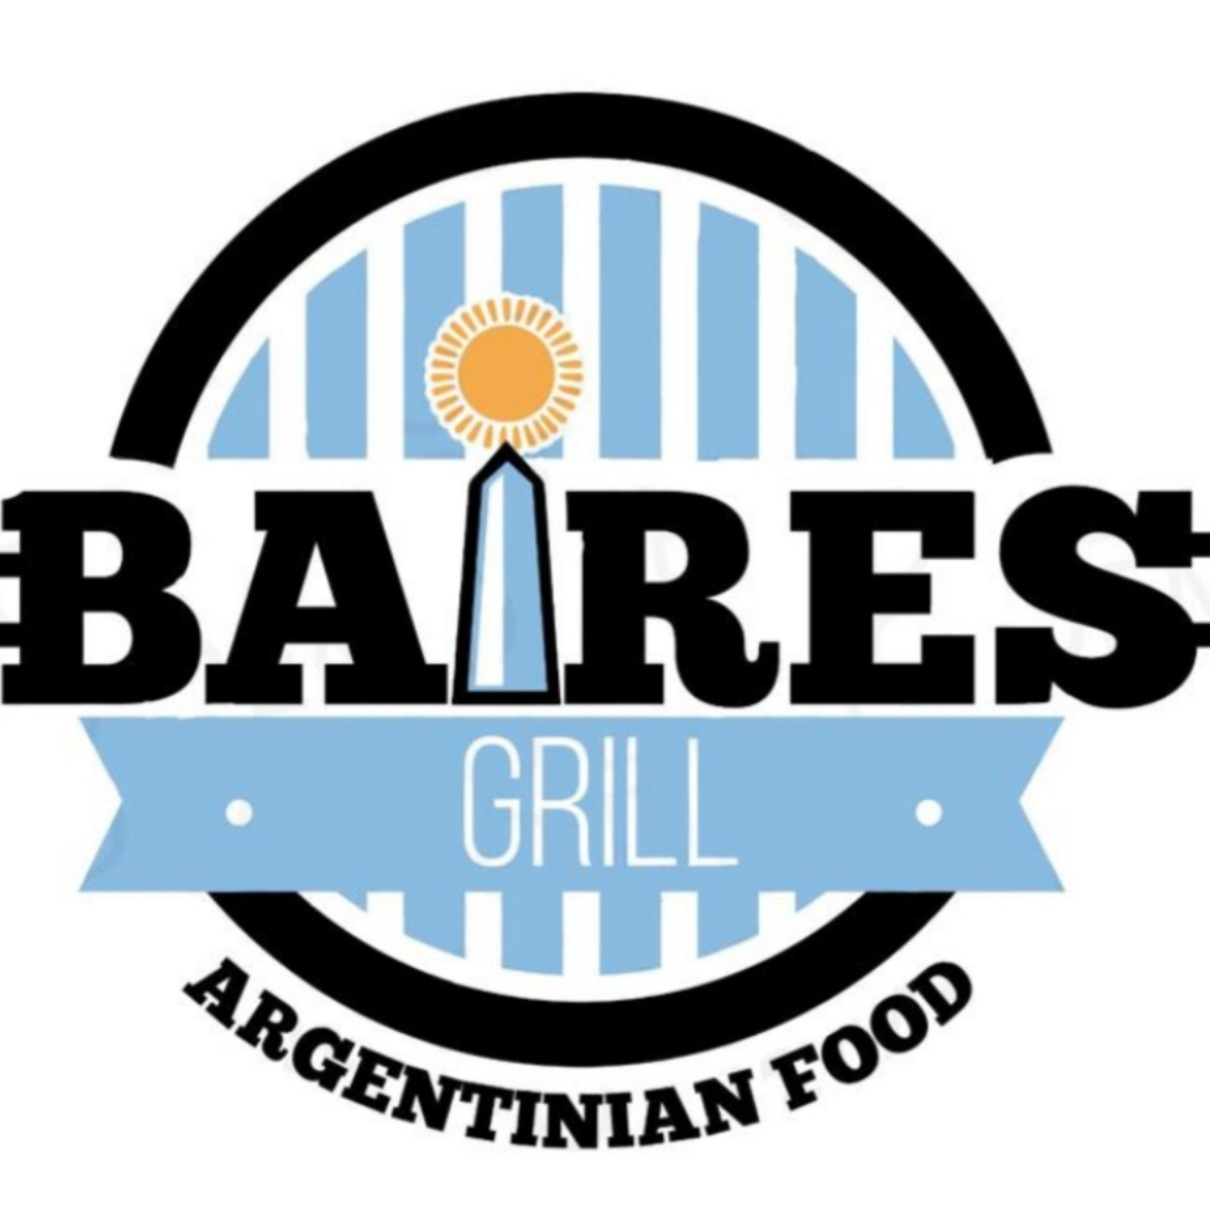 Baires food truck profile image